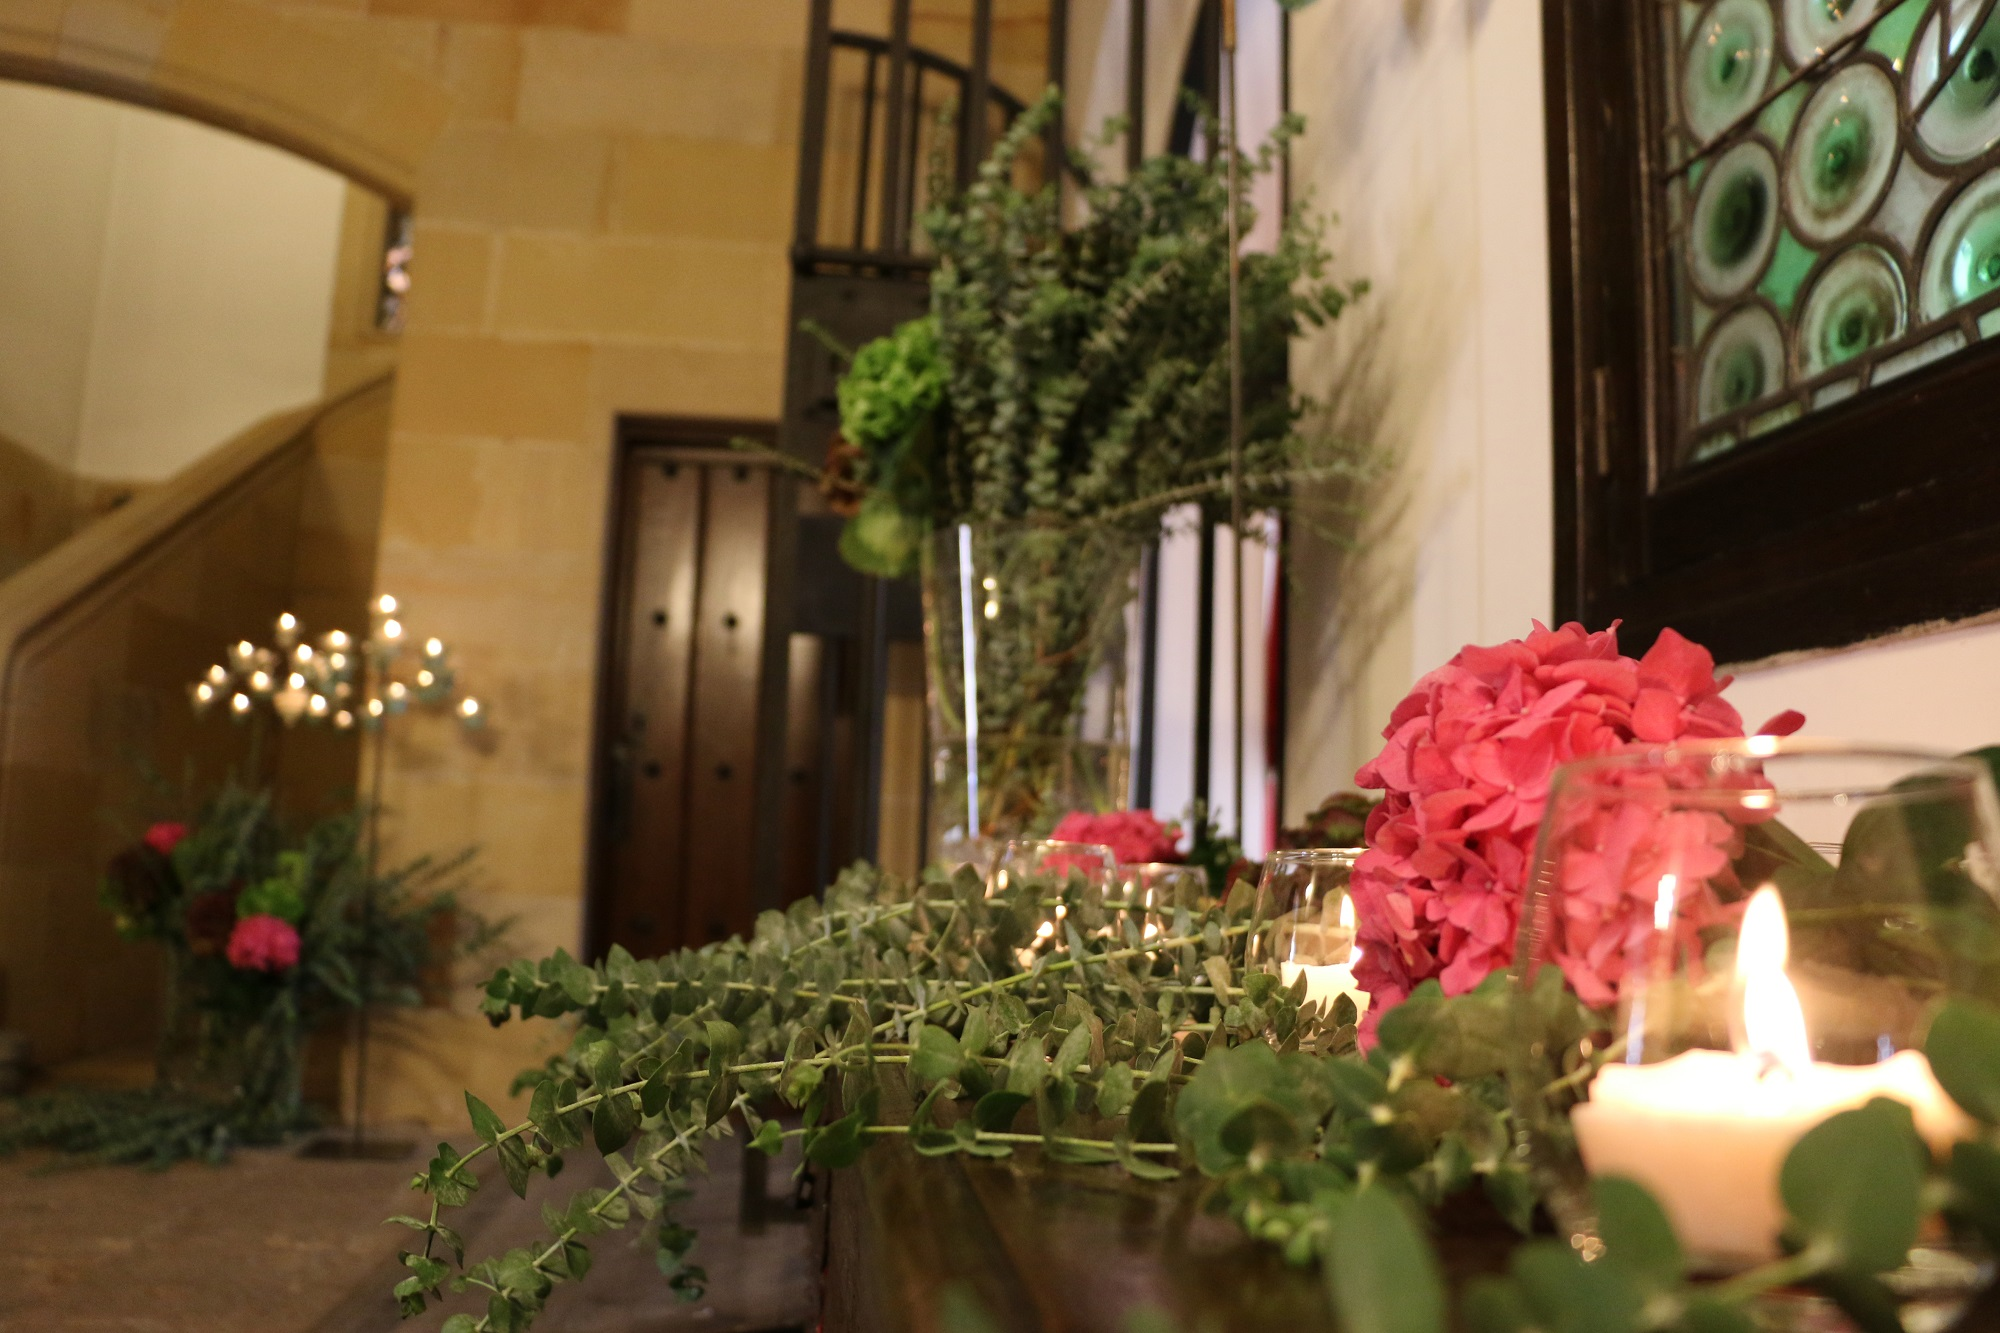 Candles and floral elements to receive the guests